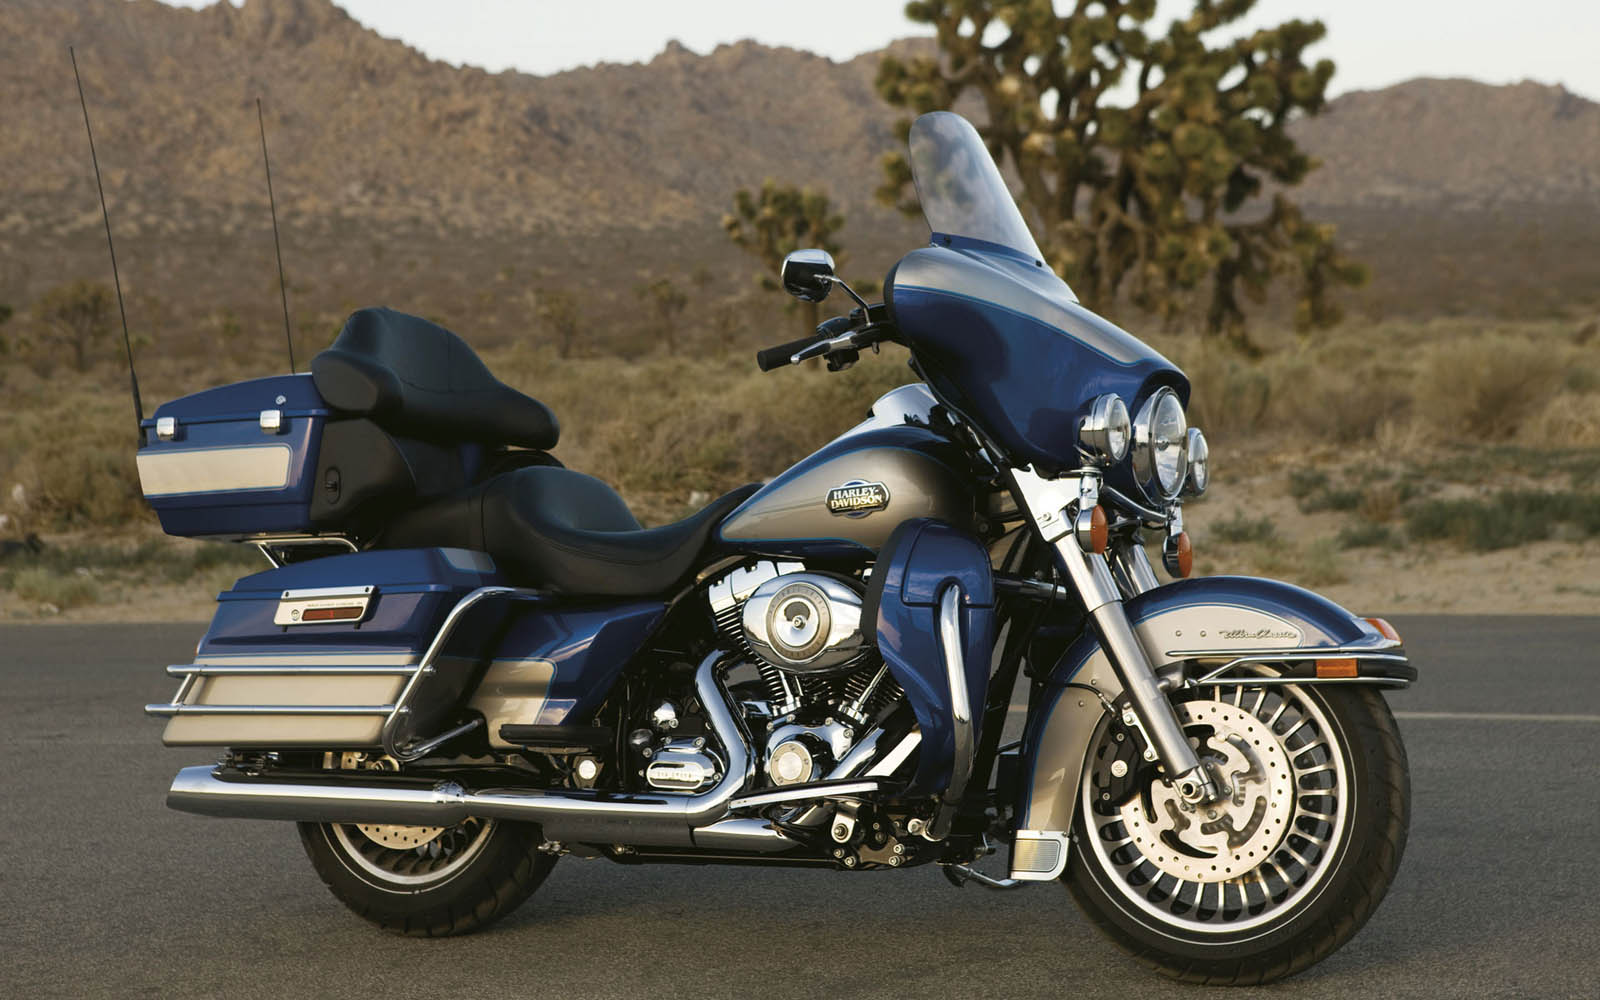 1600x1000 - Harley-Davidson Electra Glide Ultra Classic Wallpapers 20